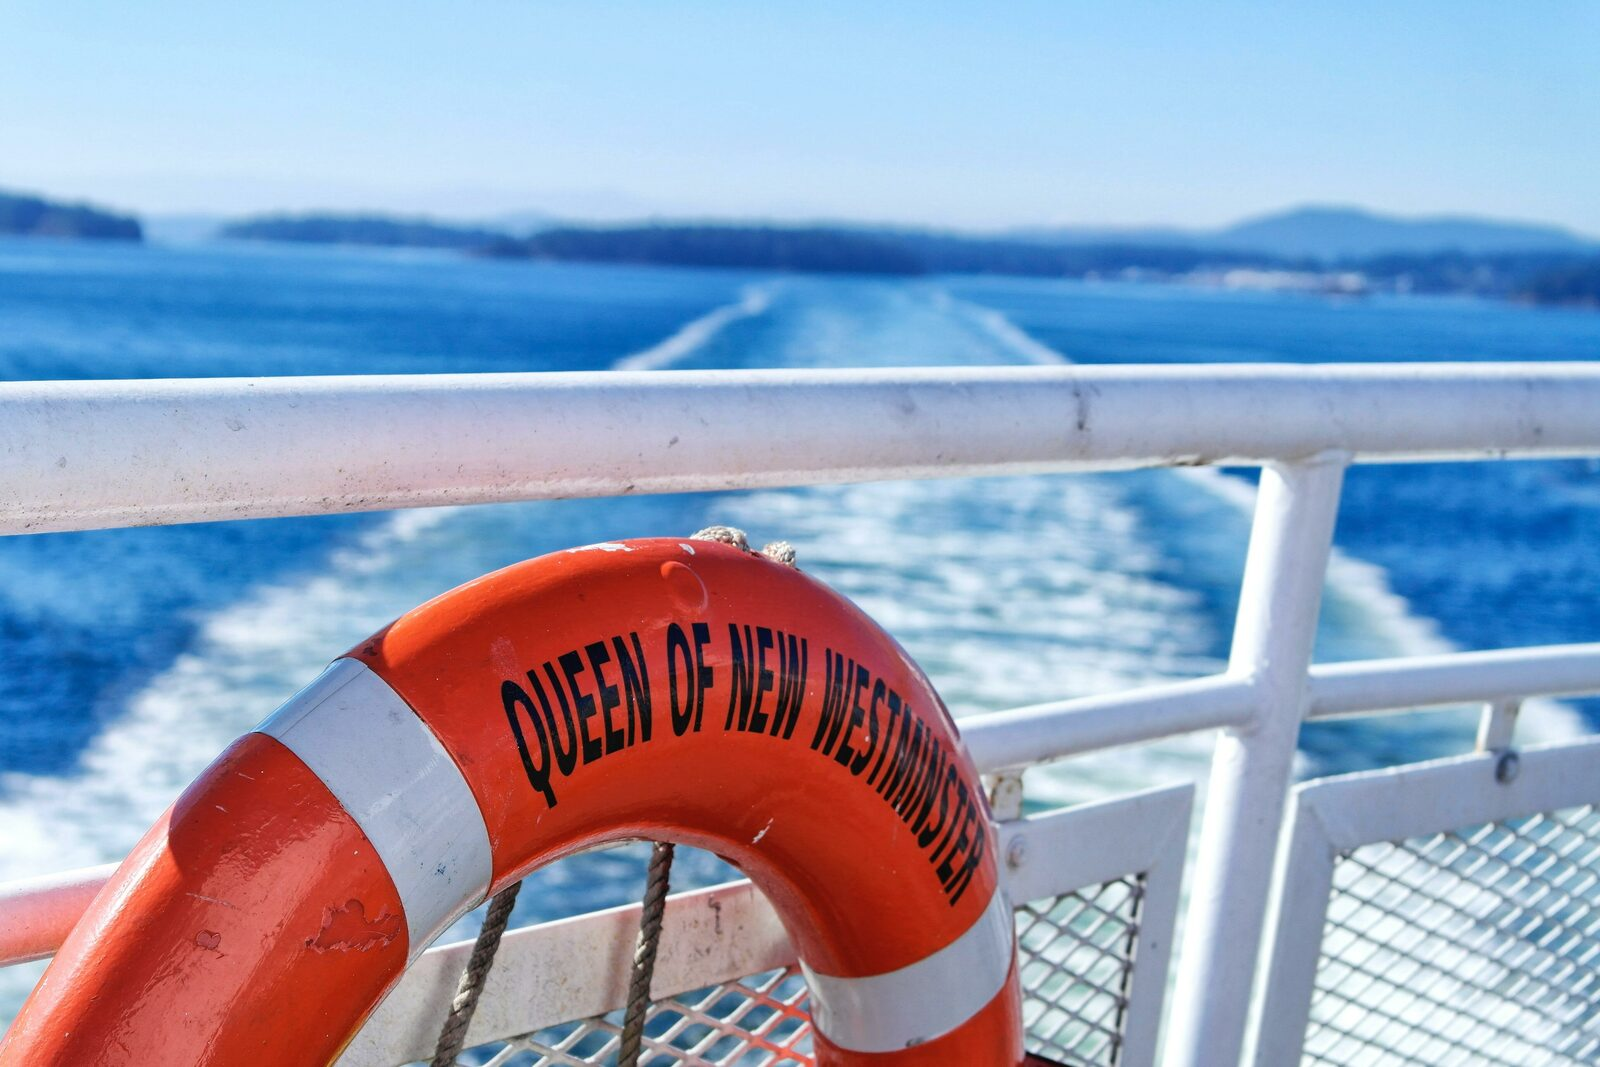 Travelling from UK to France by ferry